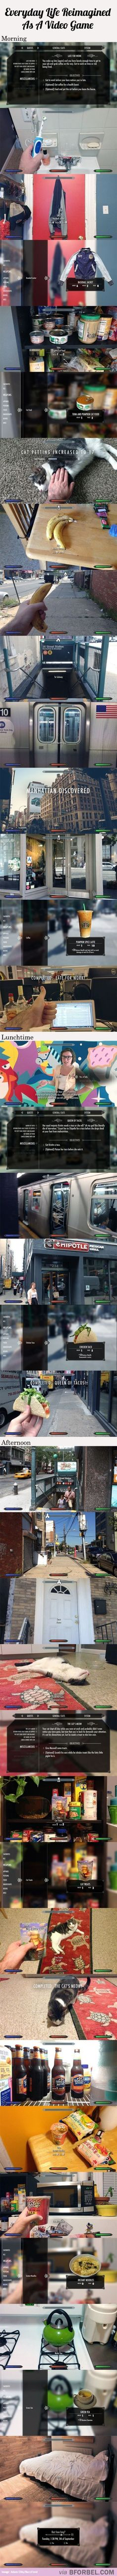 Everyday Life Re-imagined As A Video Game…